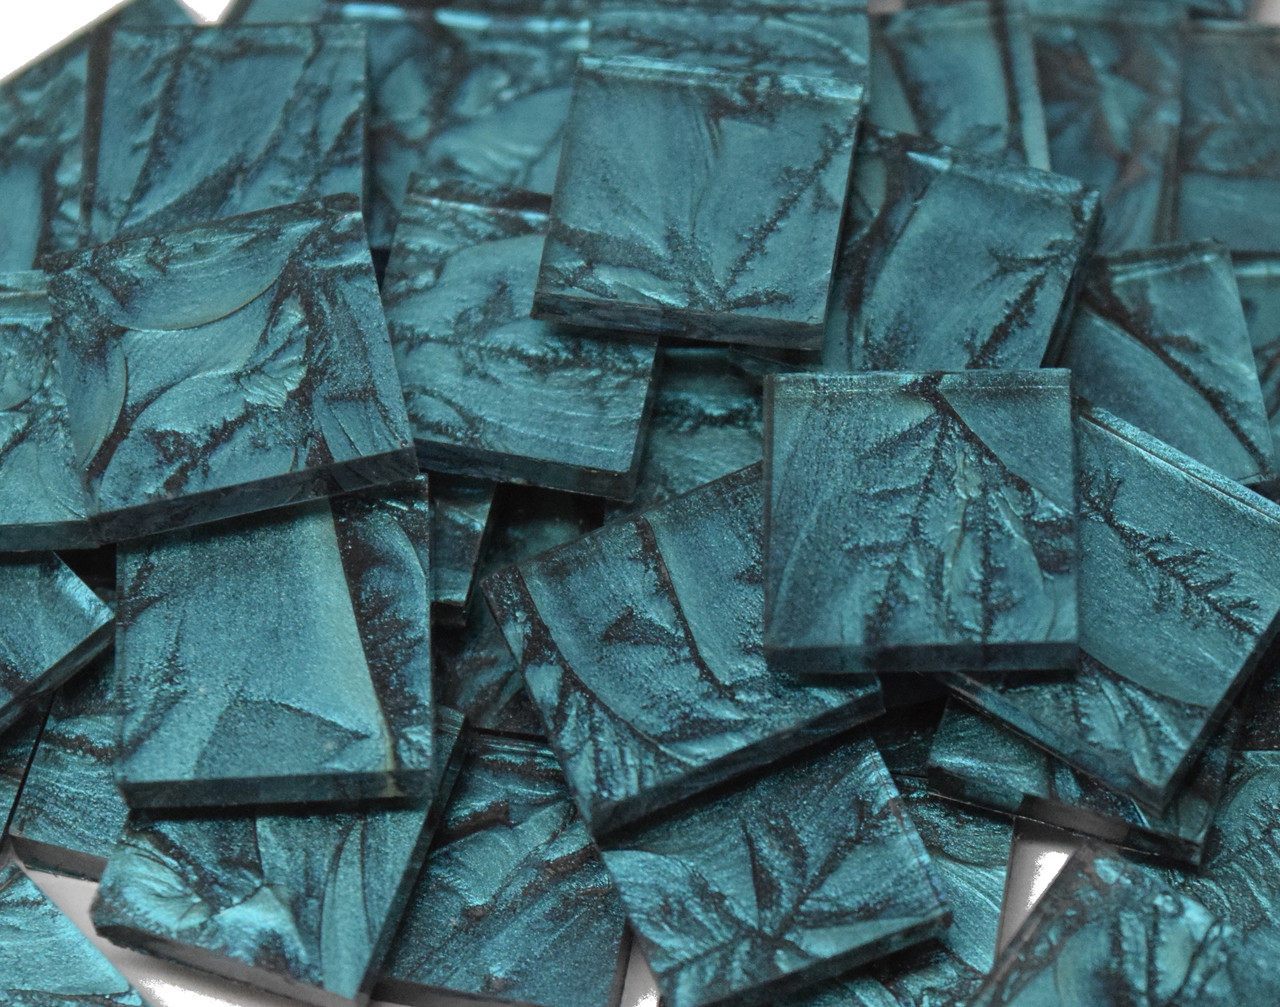 Bluegreen Van Gogh Stained Glass Mosaic Tiles